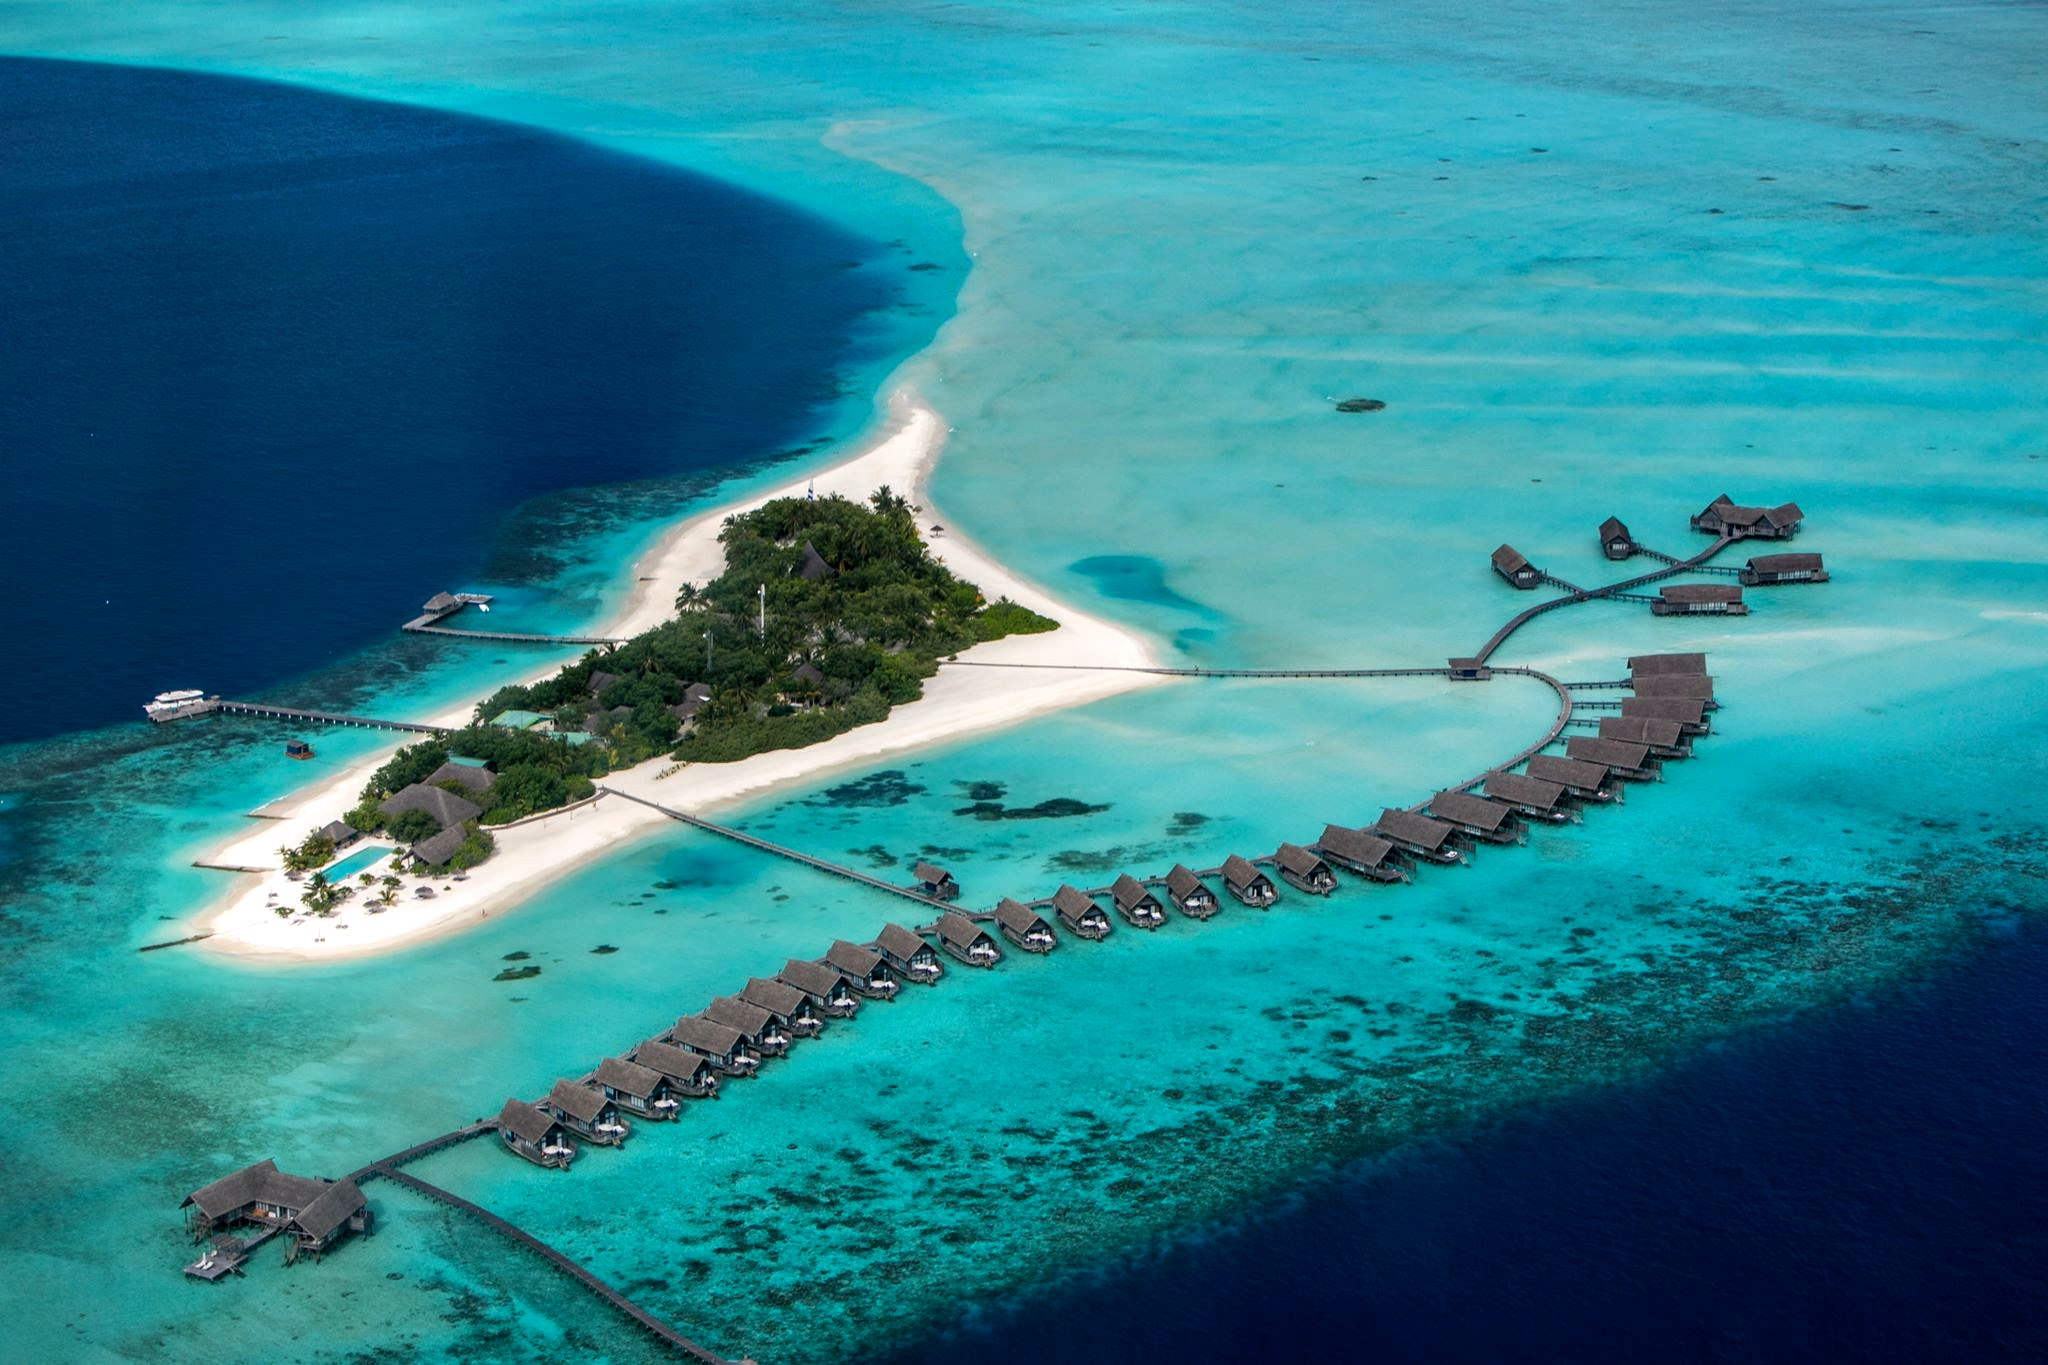 Maldives.com